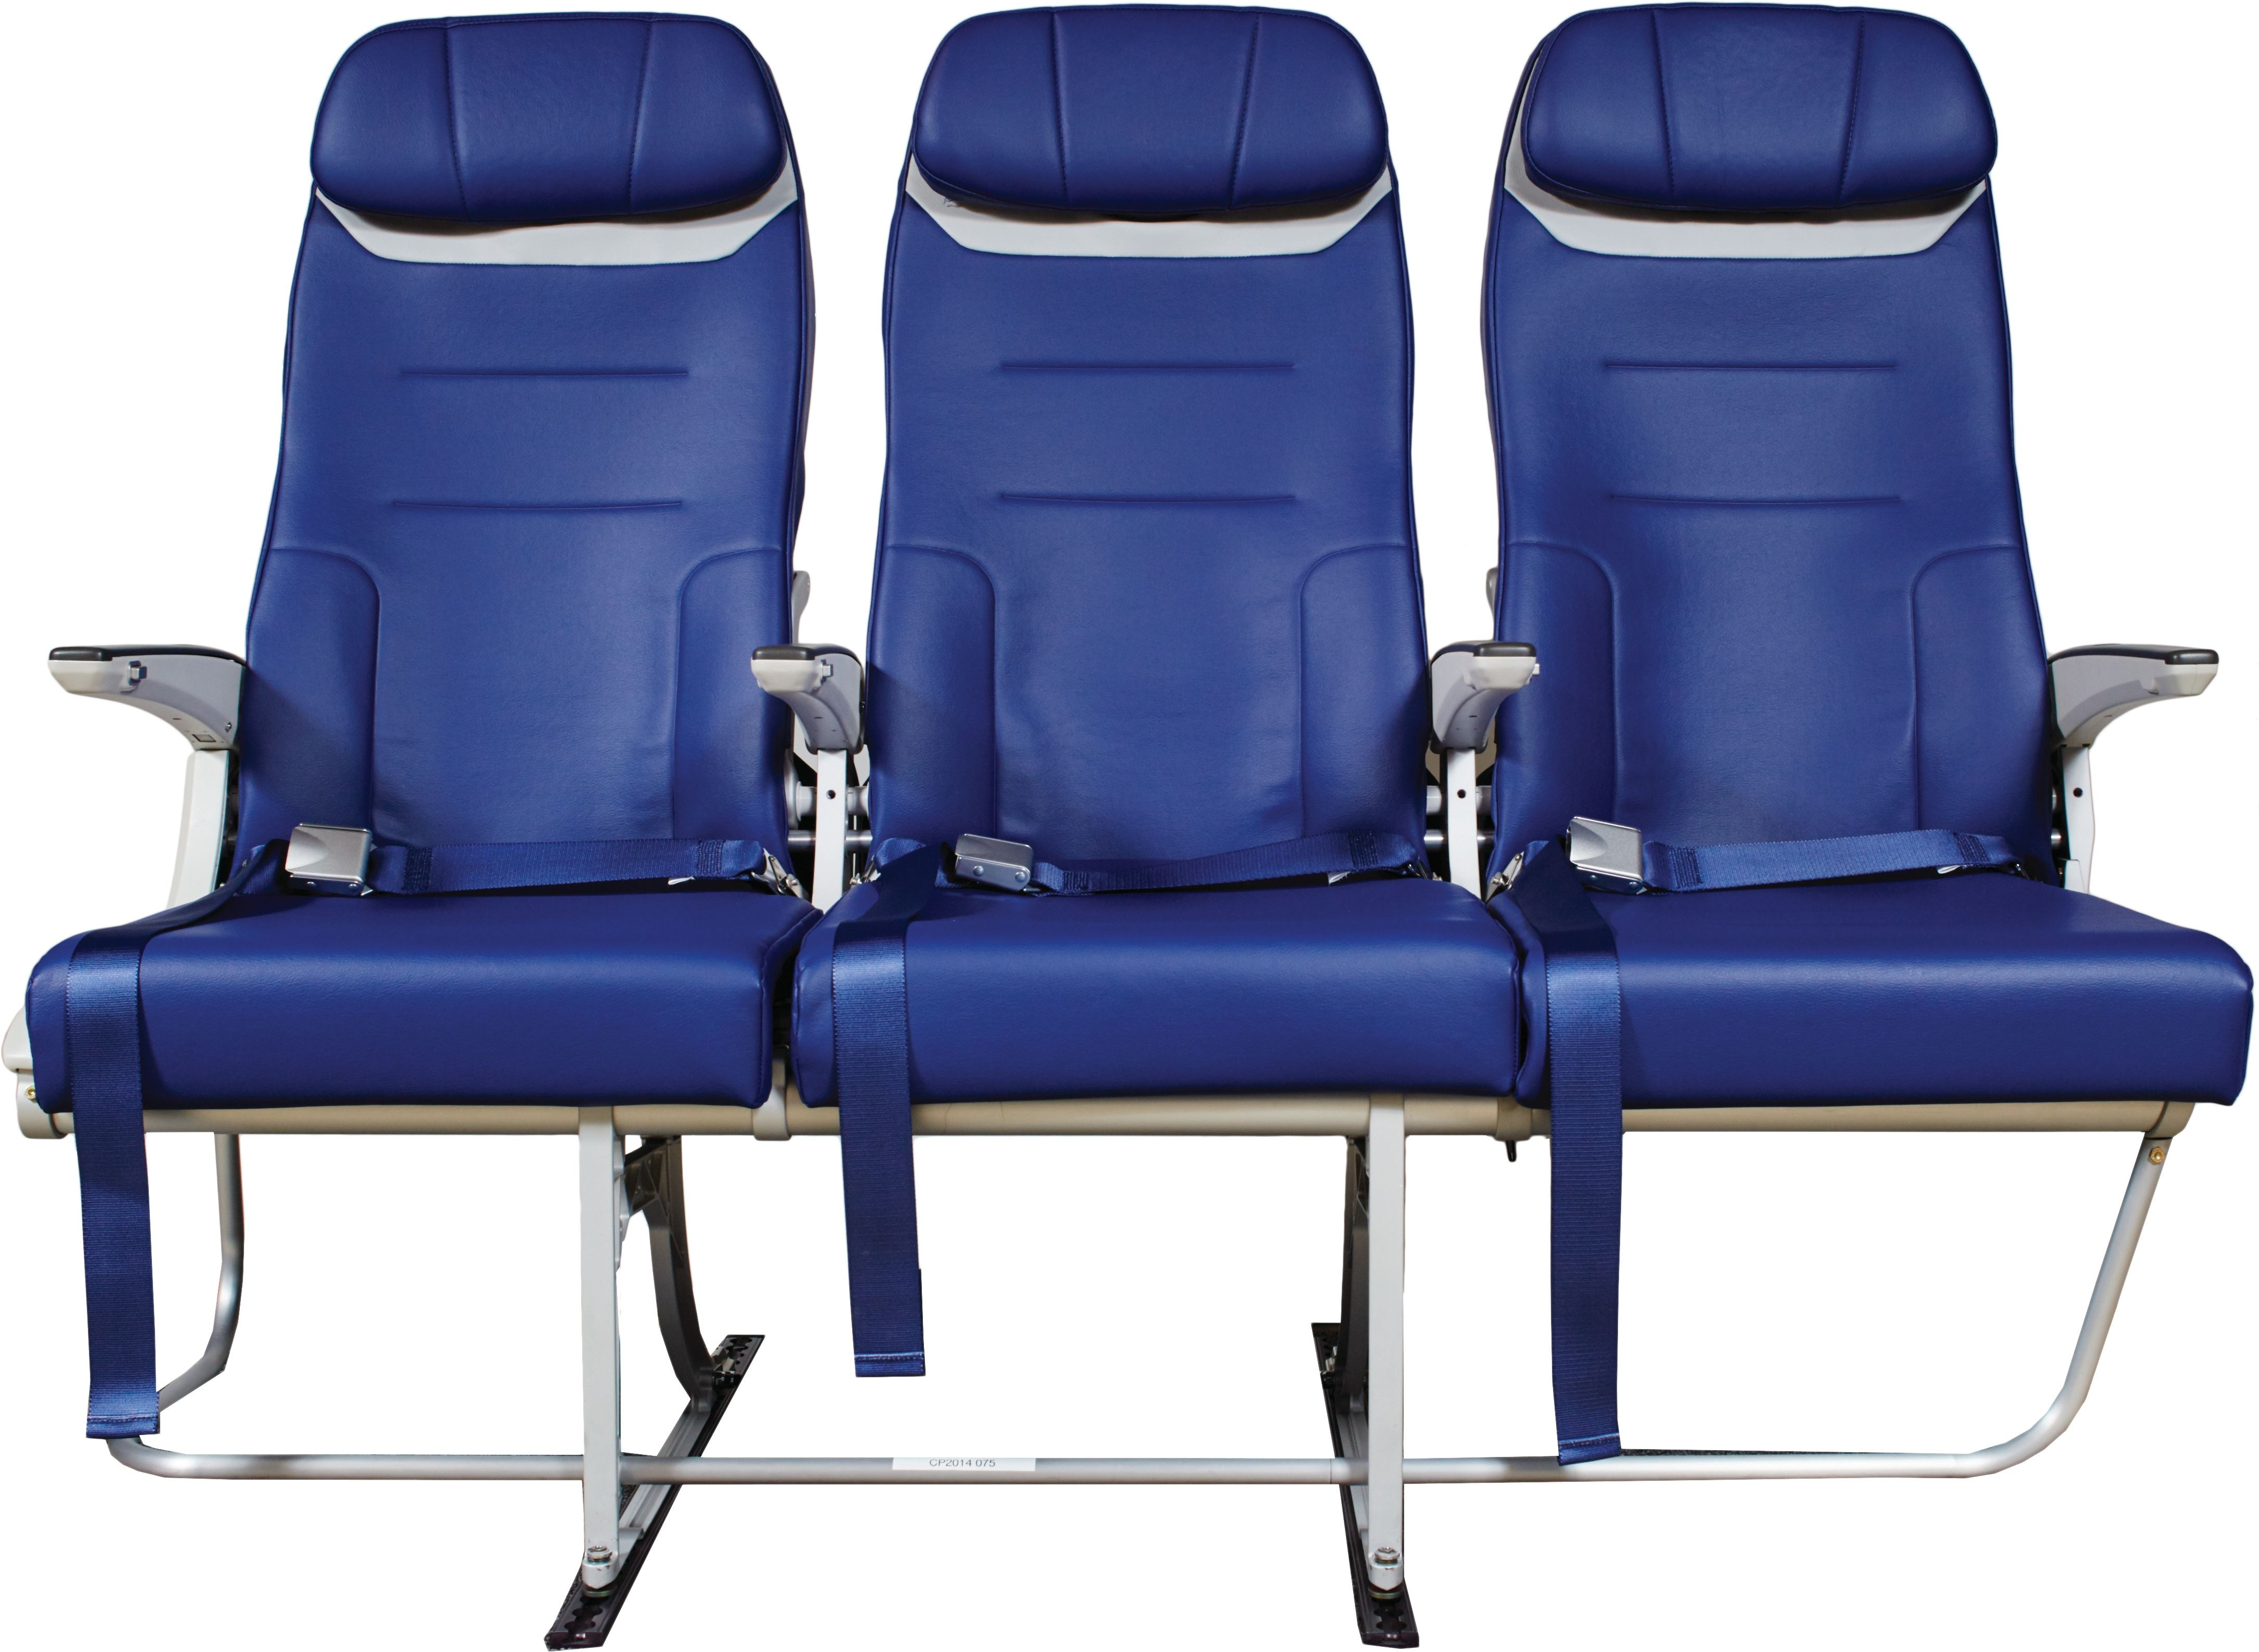 rejoice-you-will-soon-have-07-more-inches-of-seat-room-on ...